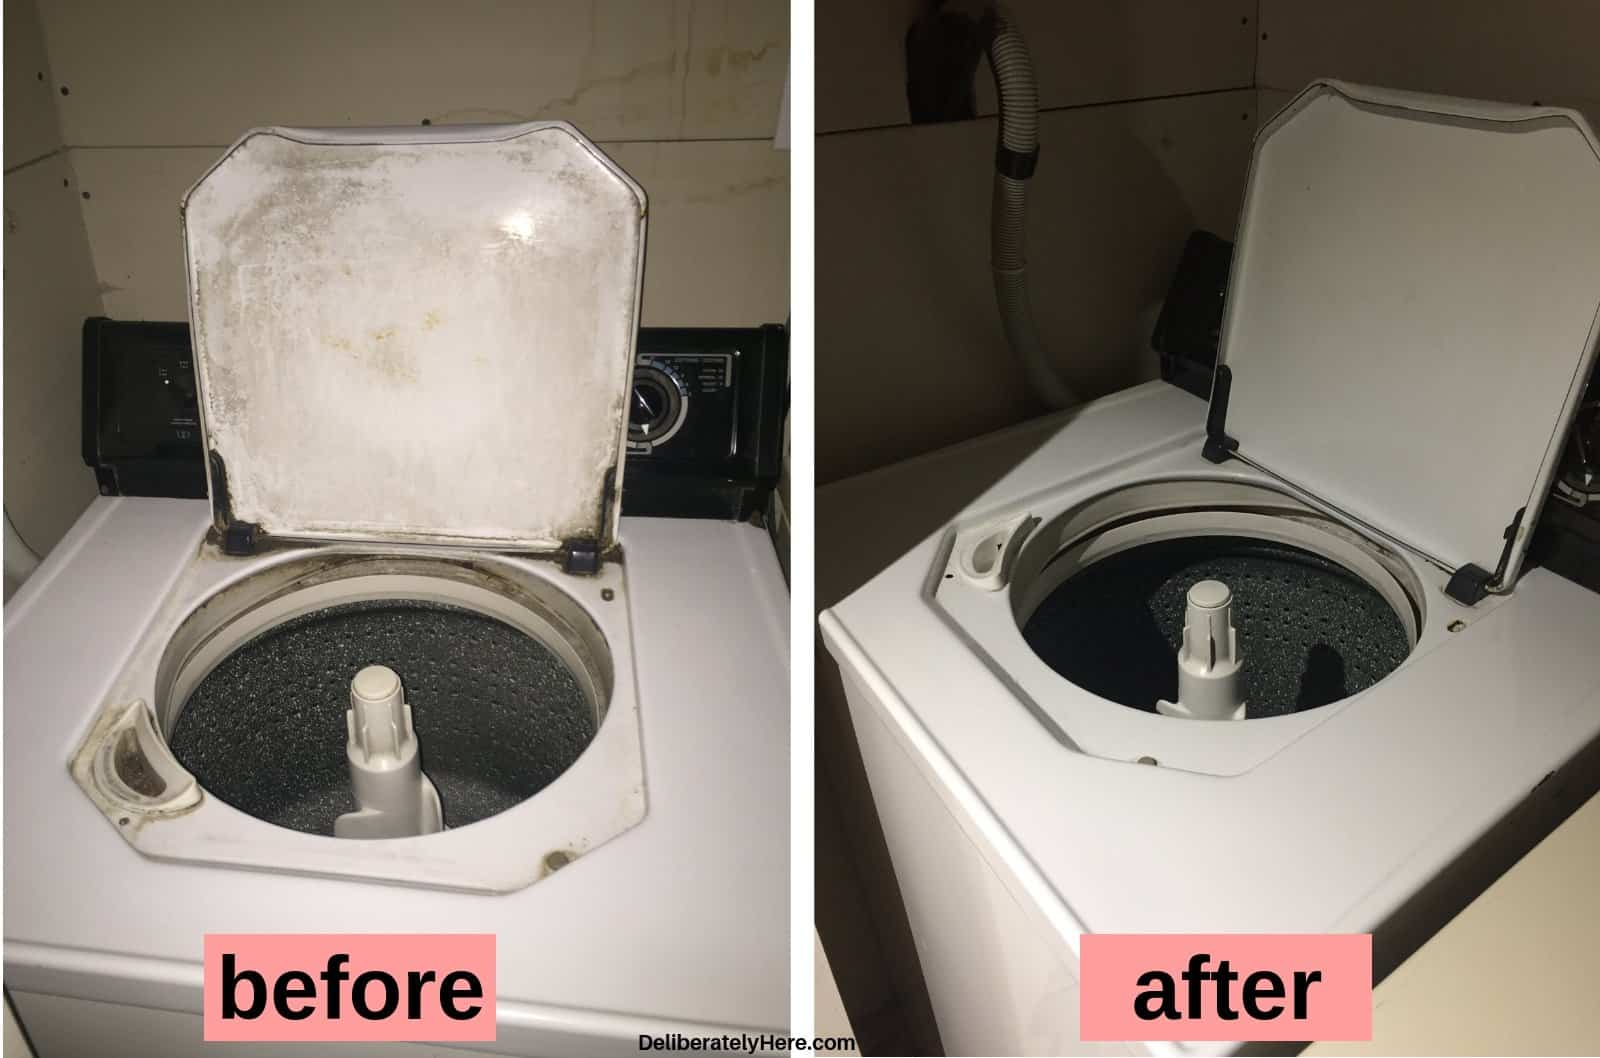 How to clean a washing machine before and after